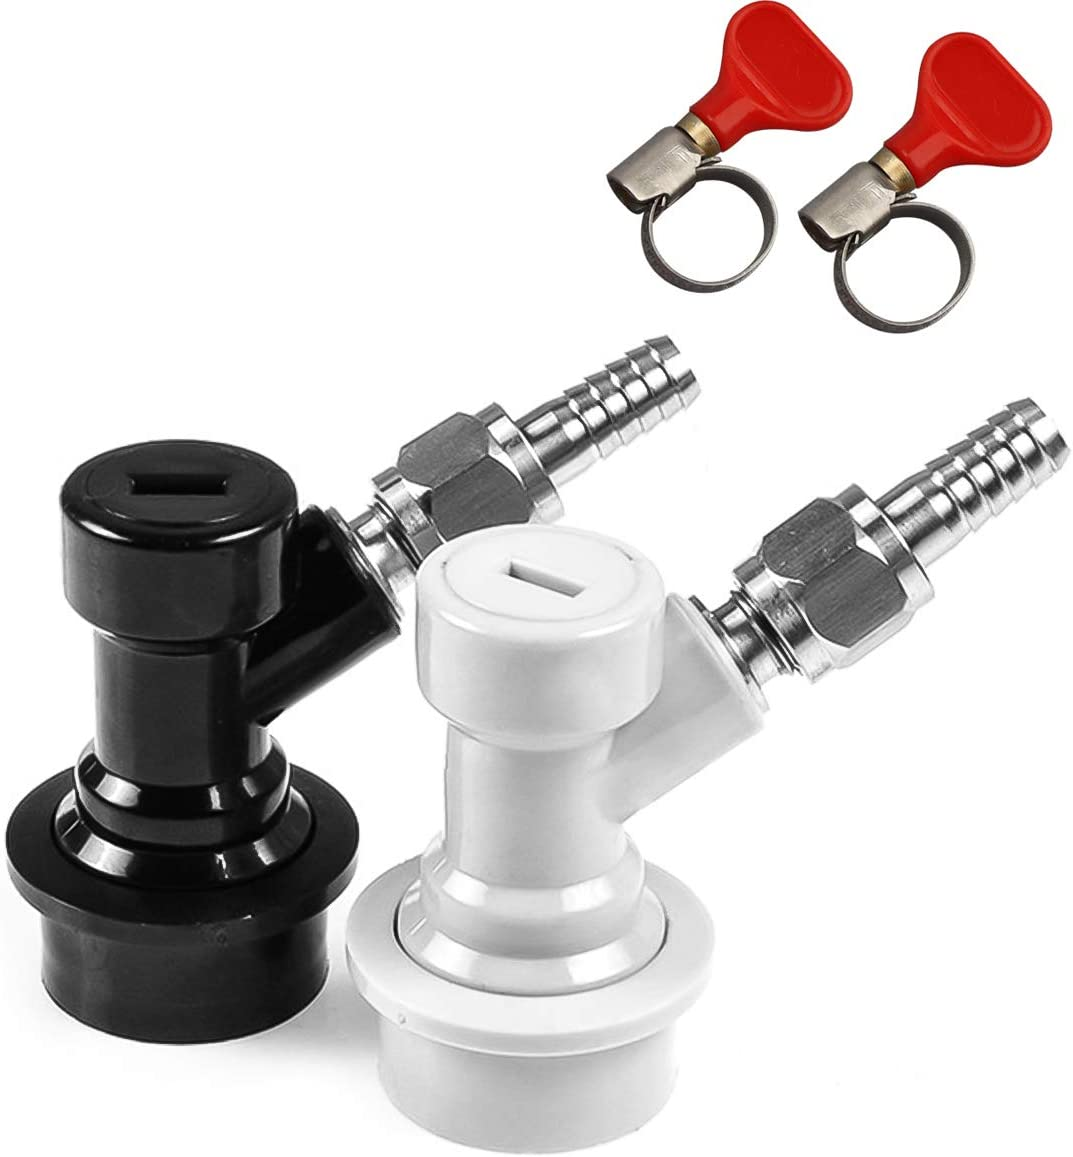 Jansamn BF BLCP-CS-WC Disconnect MFL 1/4 Thread, Ball Lock Fittings, with Hos Keg Coupler, 2 PCS, Gery